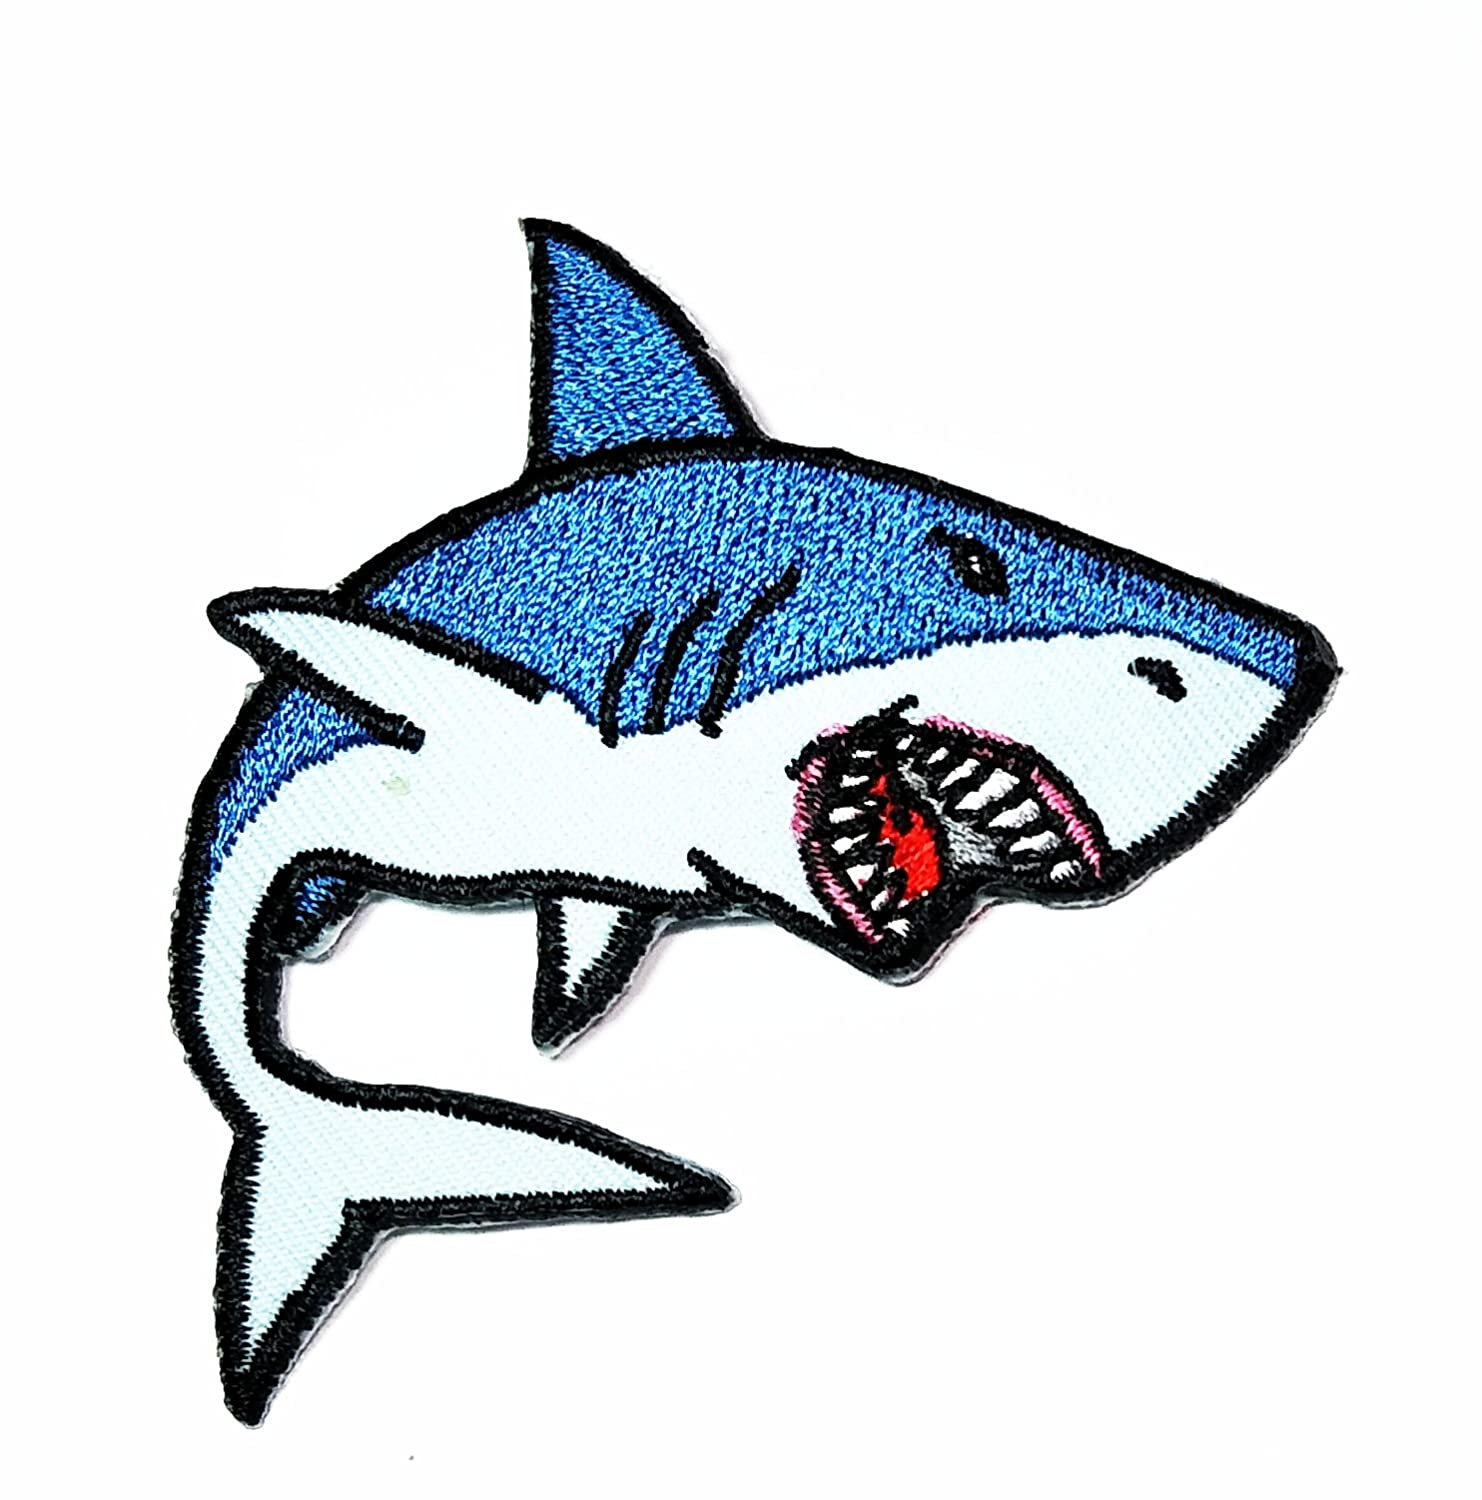 HHO The Shark Blue Shark Cartoon kid patch Embroidered DIY Patches, Cute Applique Sew Iron on Kids Craft Patch for Bags Jackets Jeans Clothes